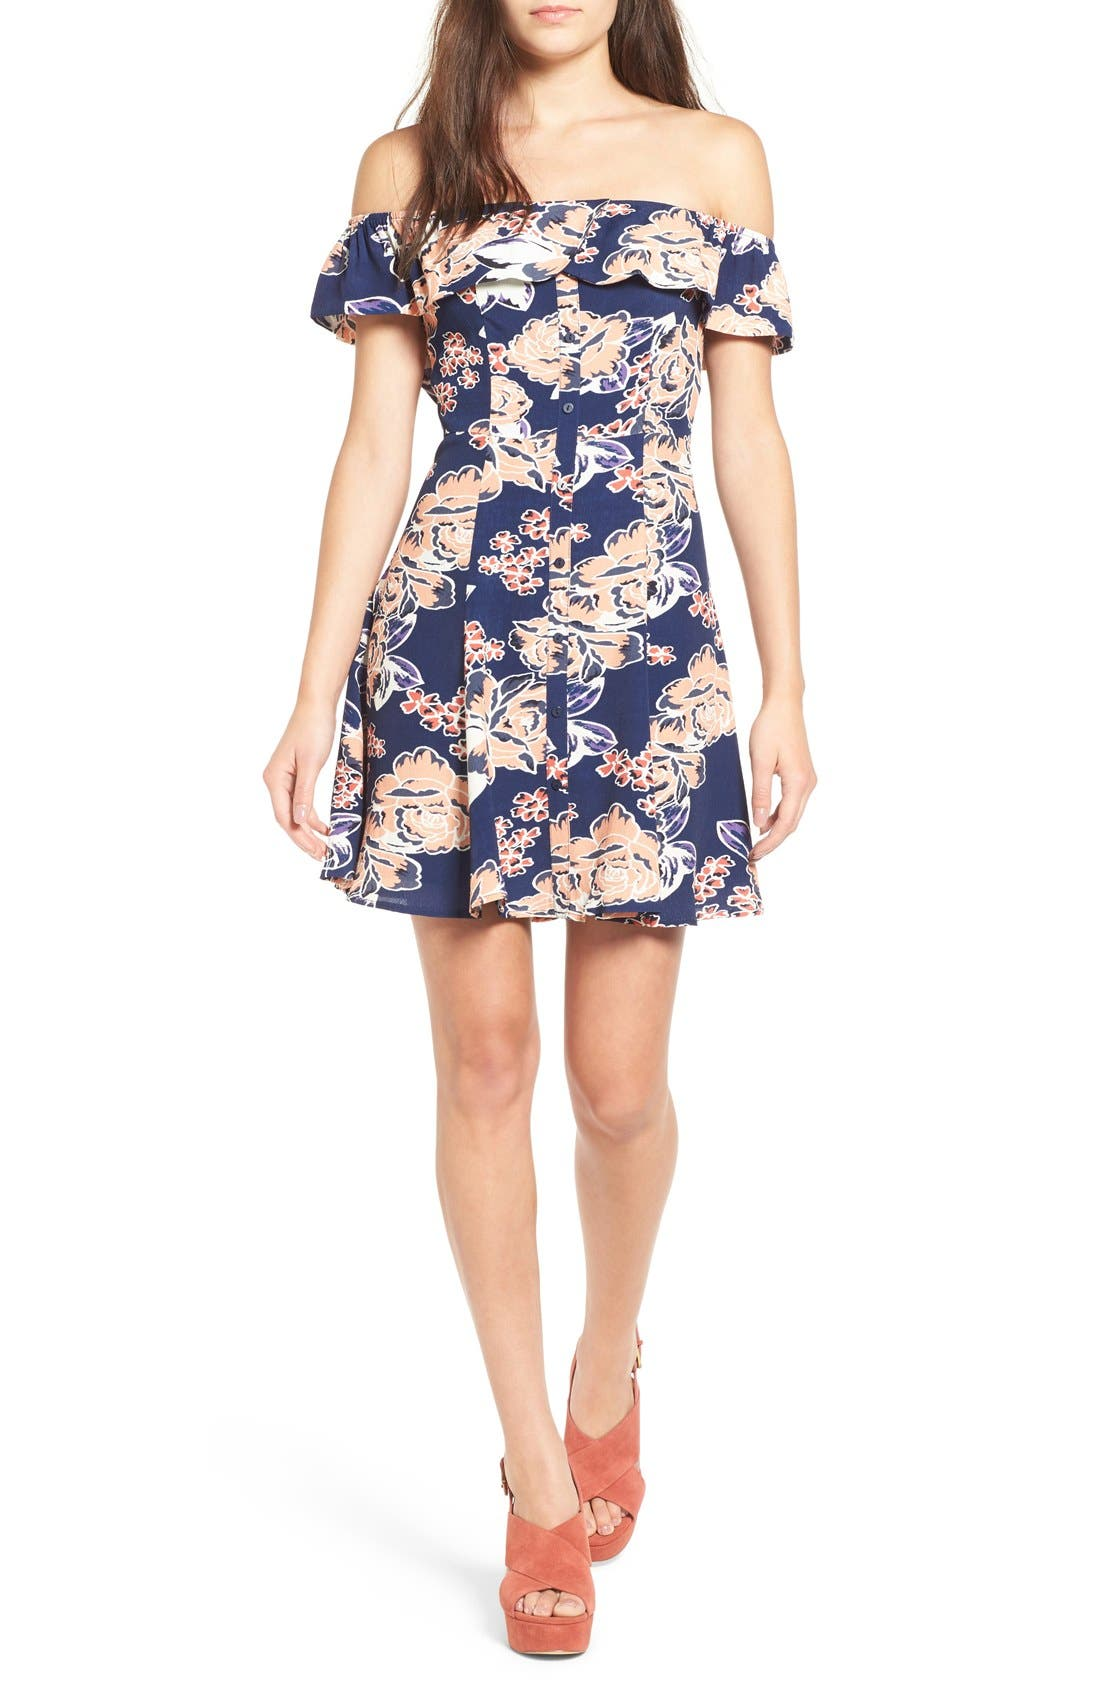 Main Image - Lovers + Friends 'Vineyard' Floral Print Off the Shoulder Minidress